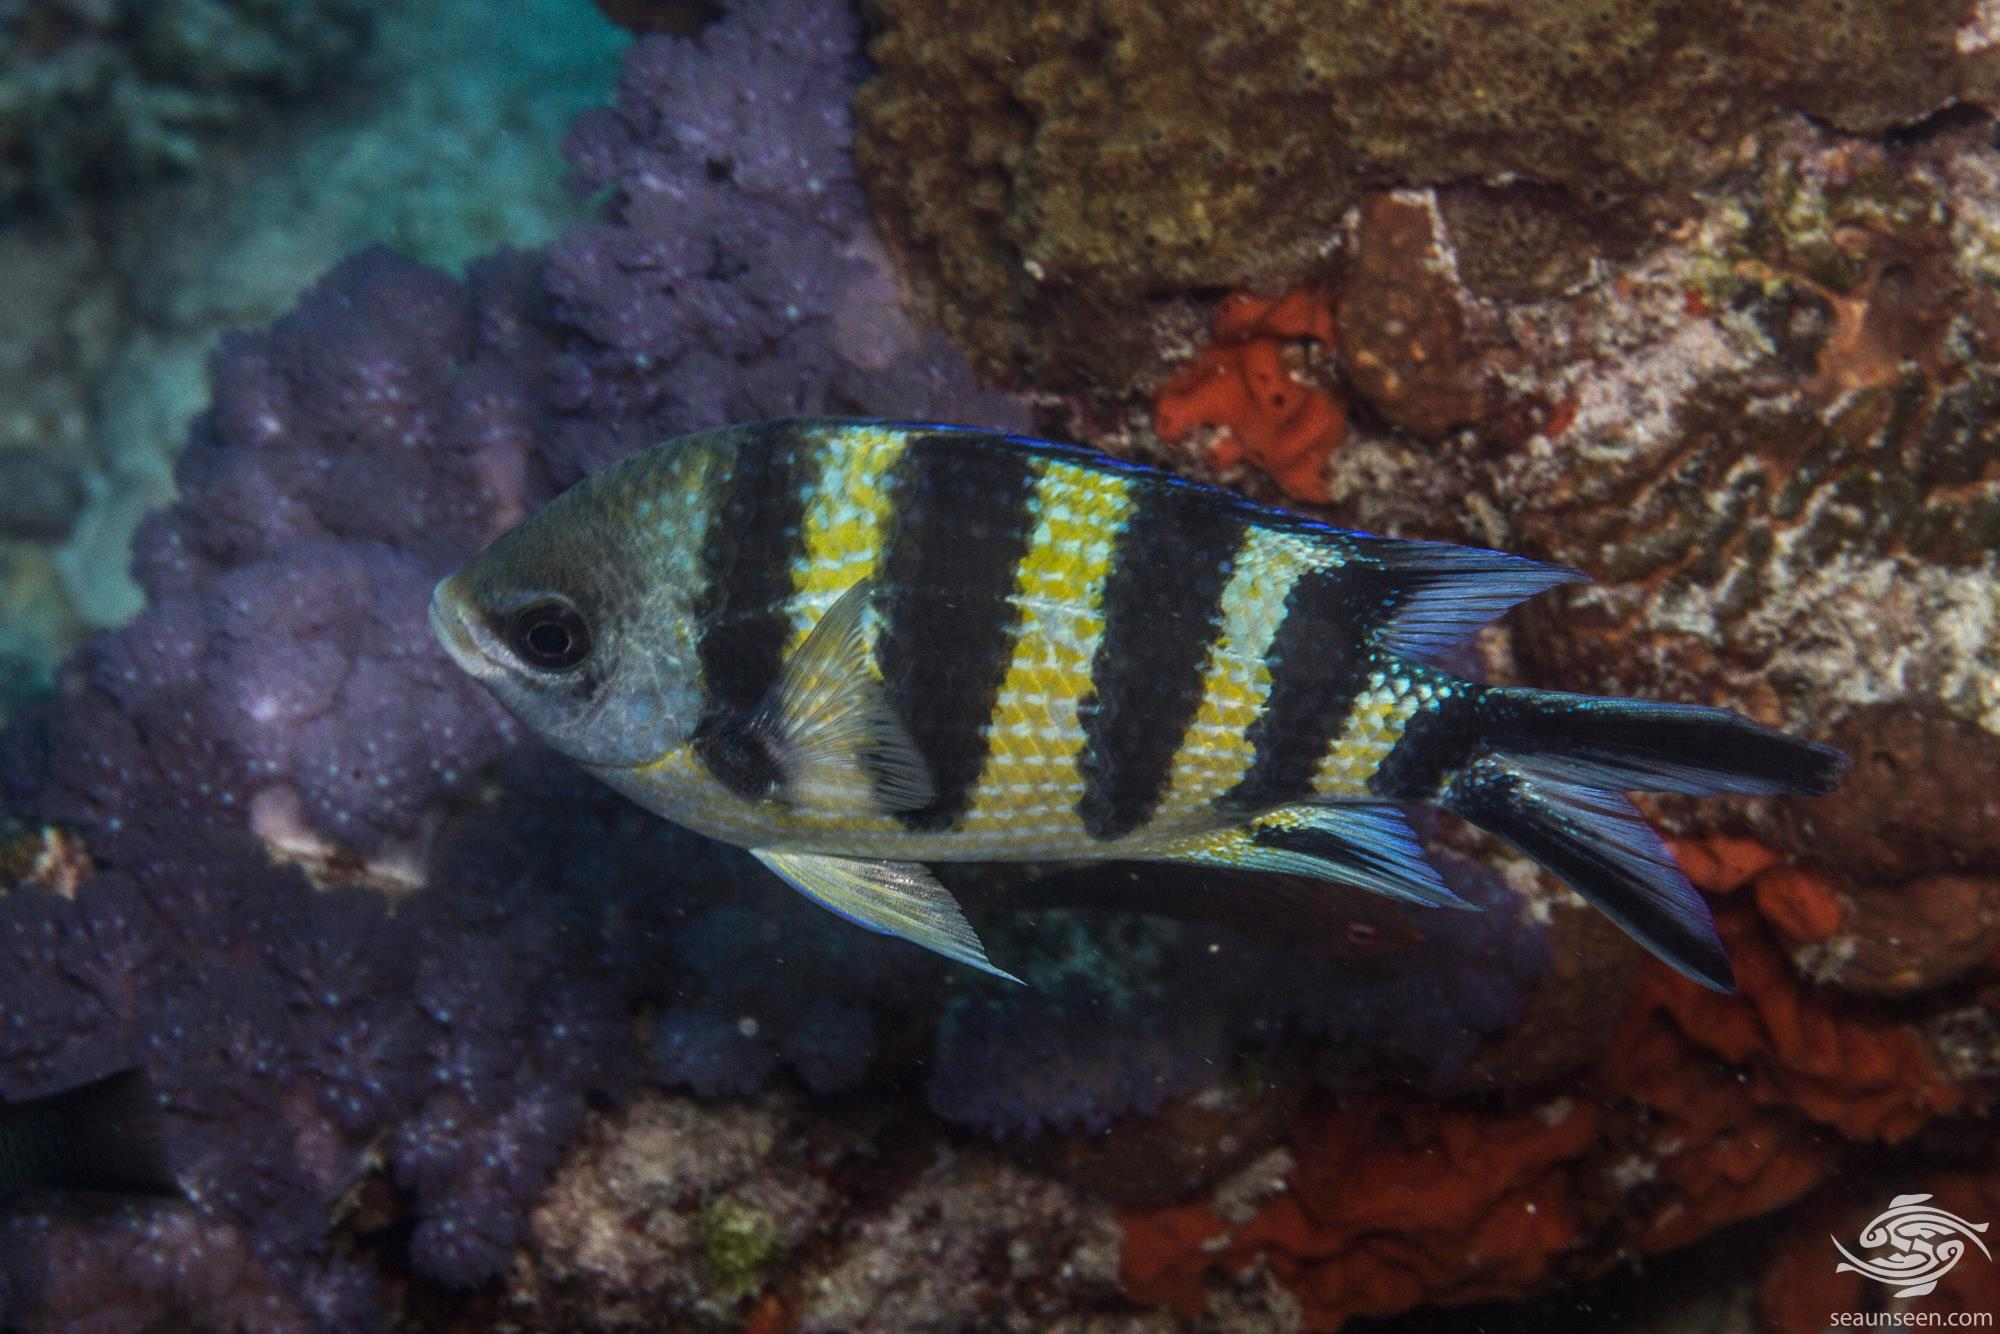 Indo-Pacific Sergeant (Abudefduf vaigiensis) is also known as the Five-banded Sergeant-major